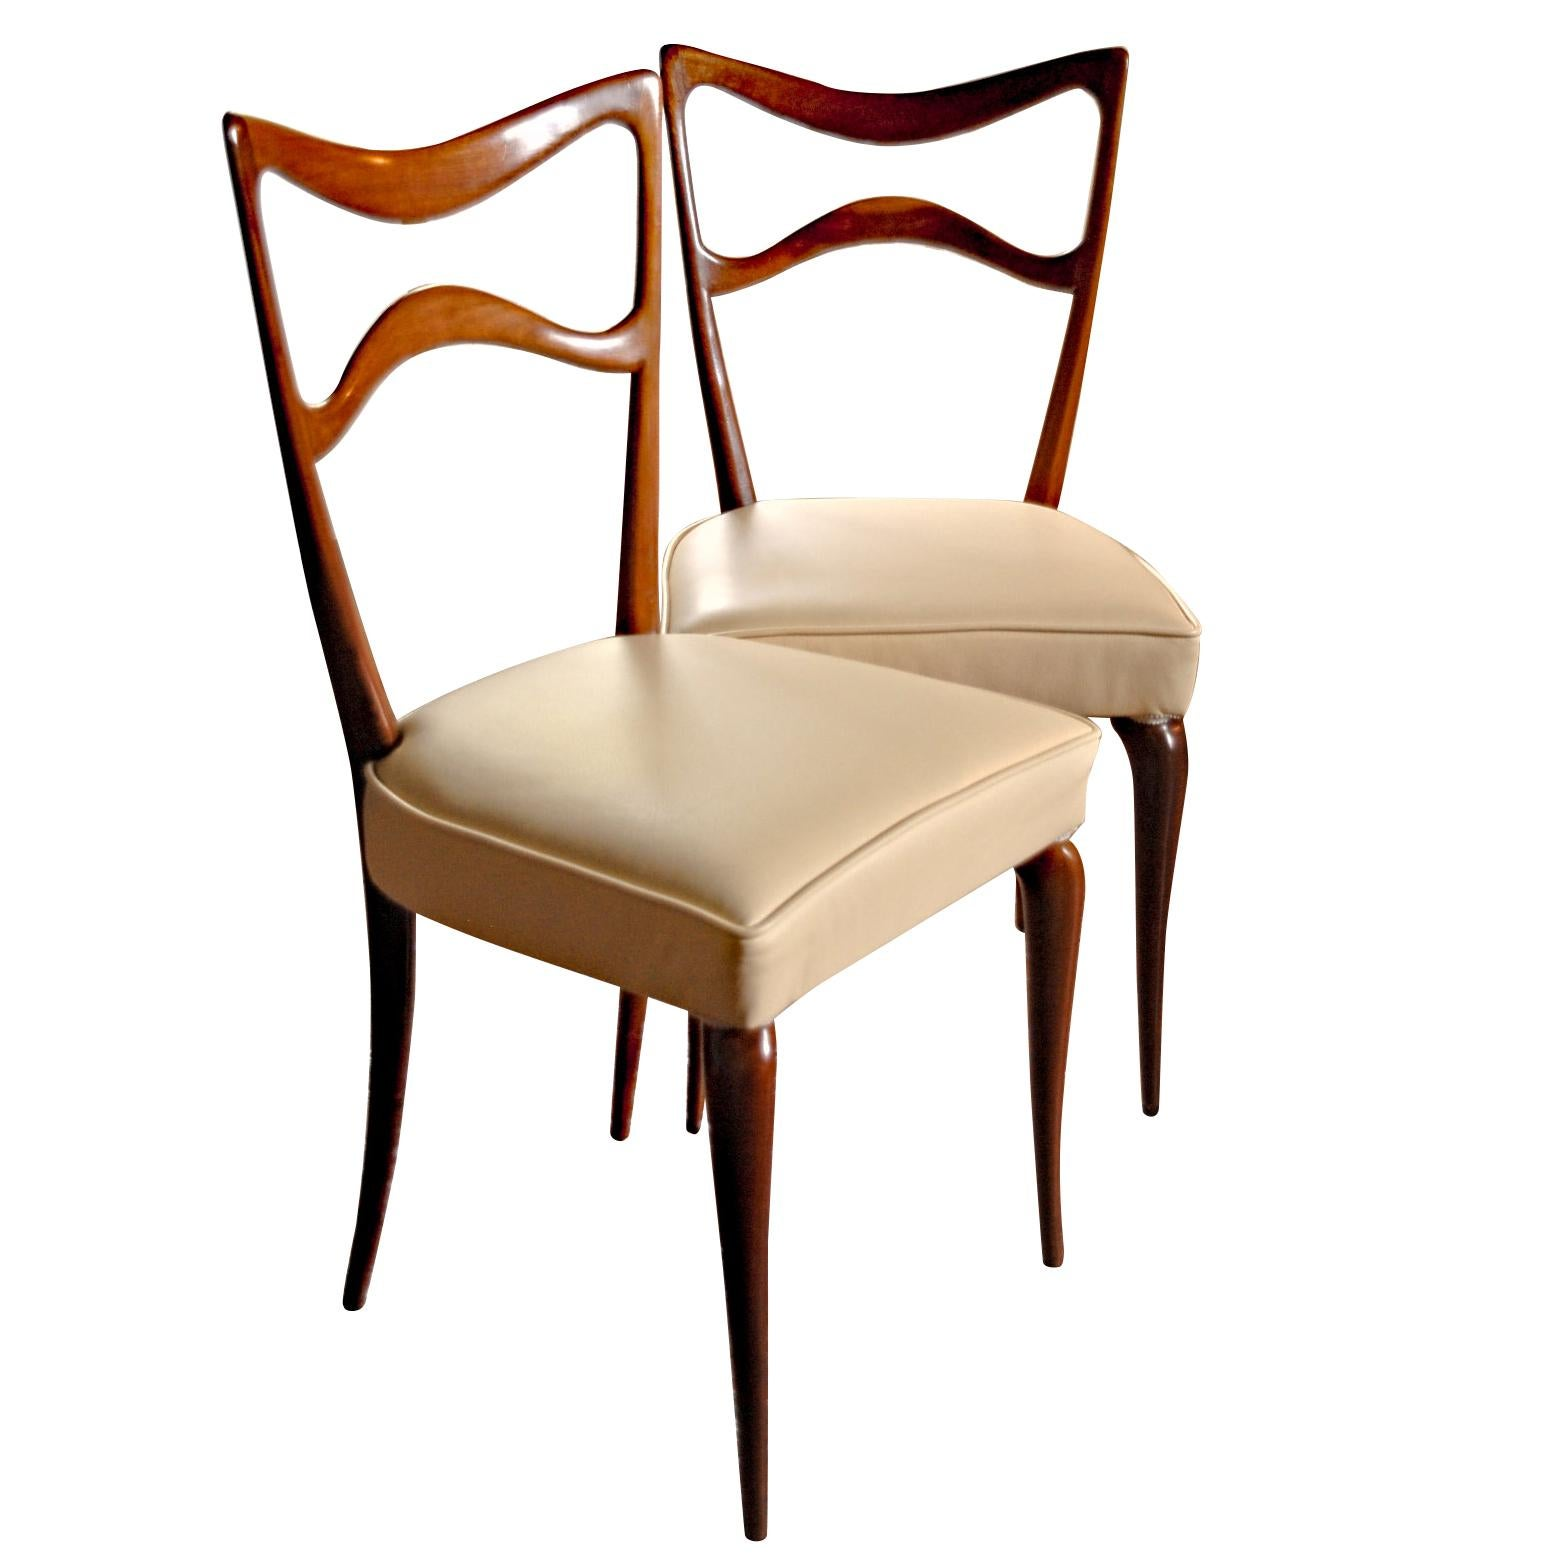 Guglielmo Ulrich Six Sculptural Dining Chairs, Mahogany and Italian leather 40s